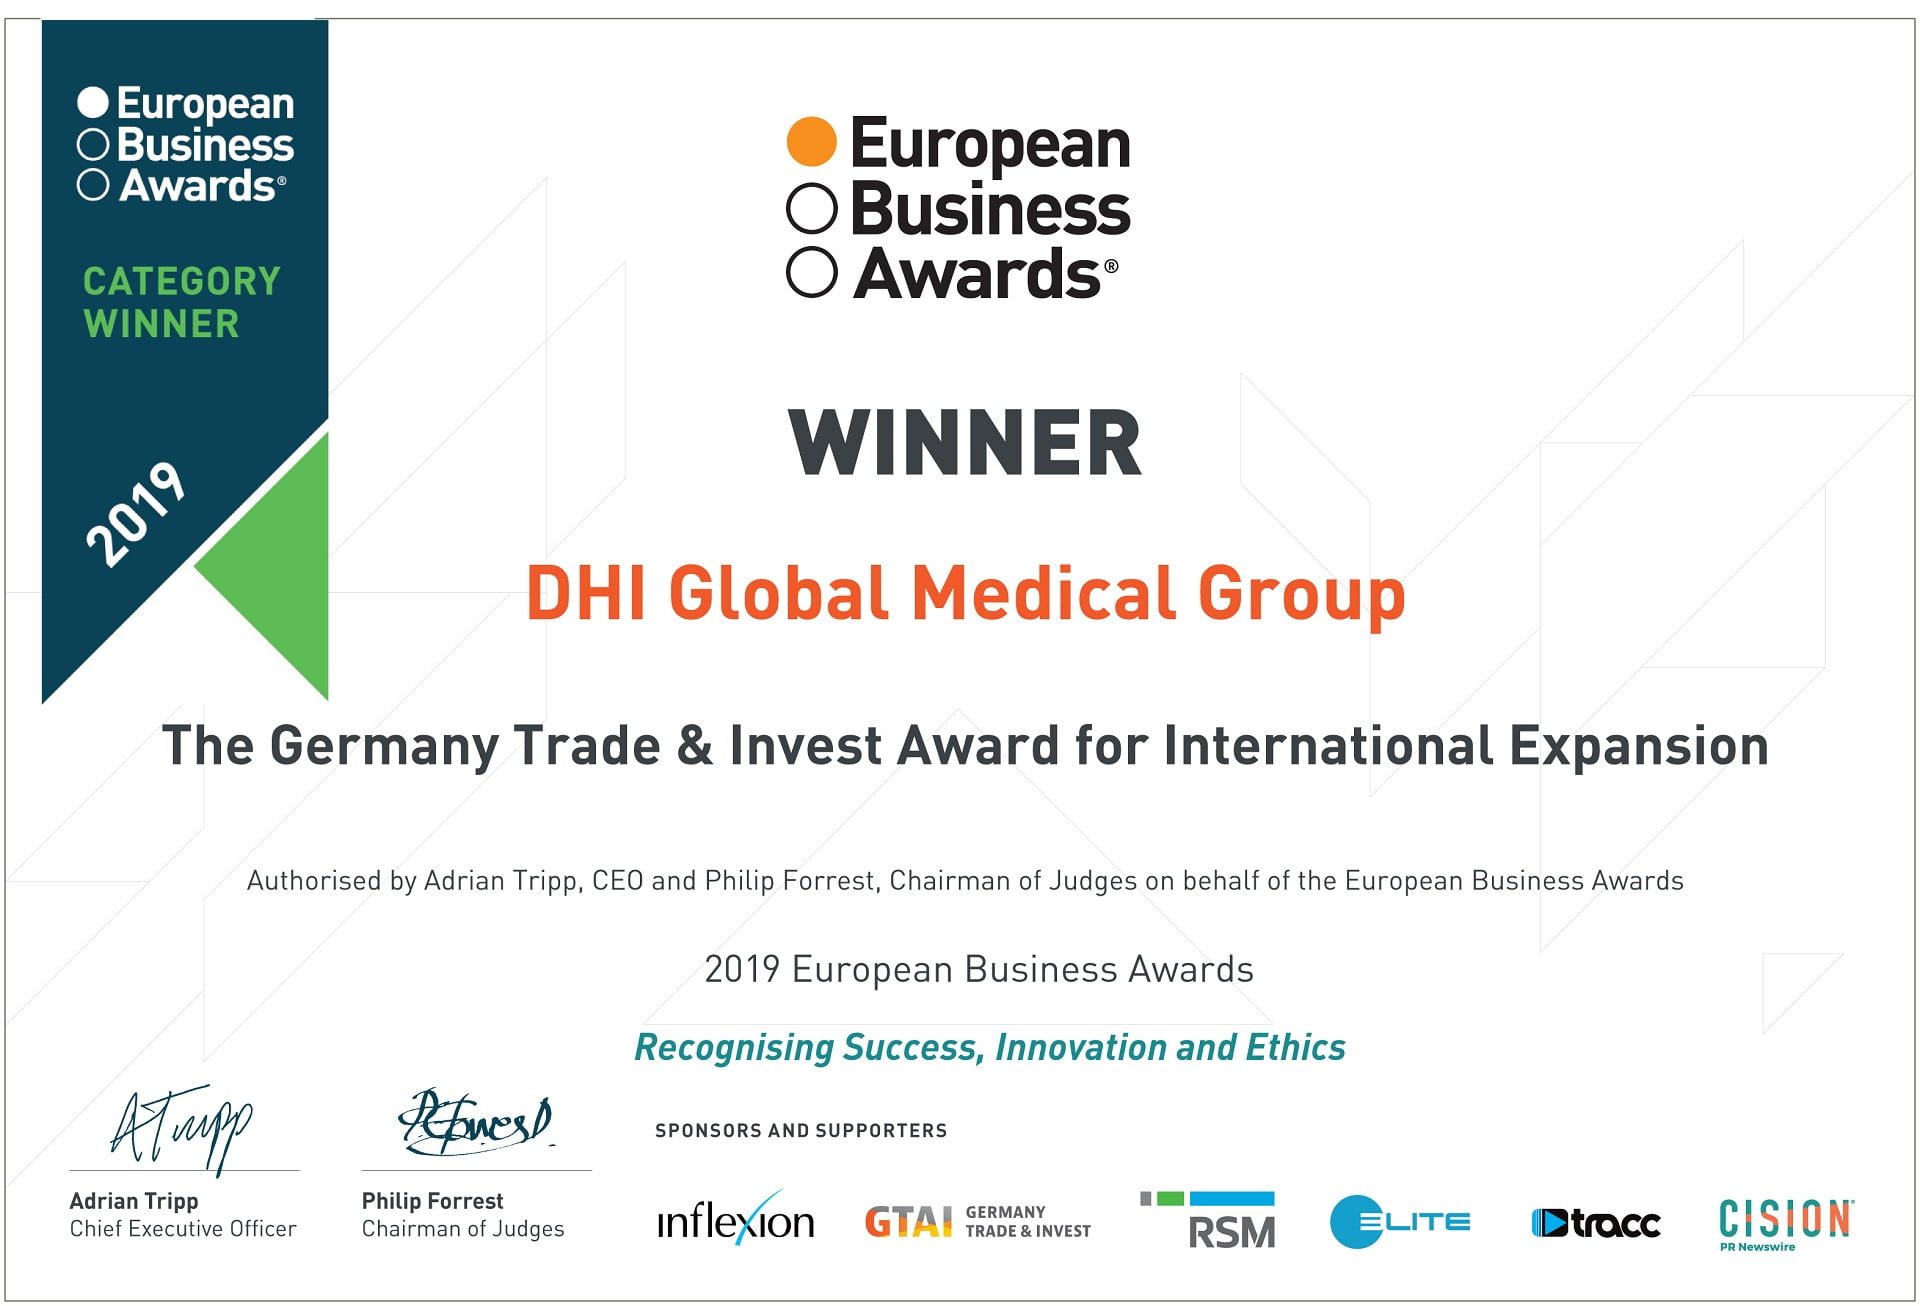 DHI Global Medical Group Wins The International Expansion Award At The European Business Awards 2019!